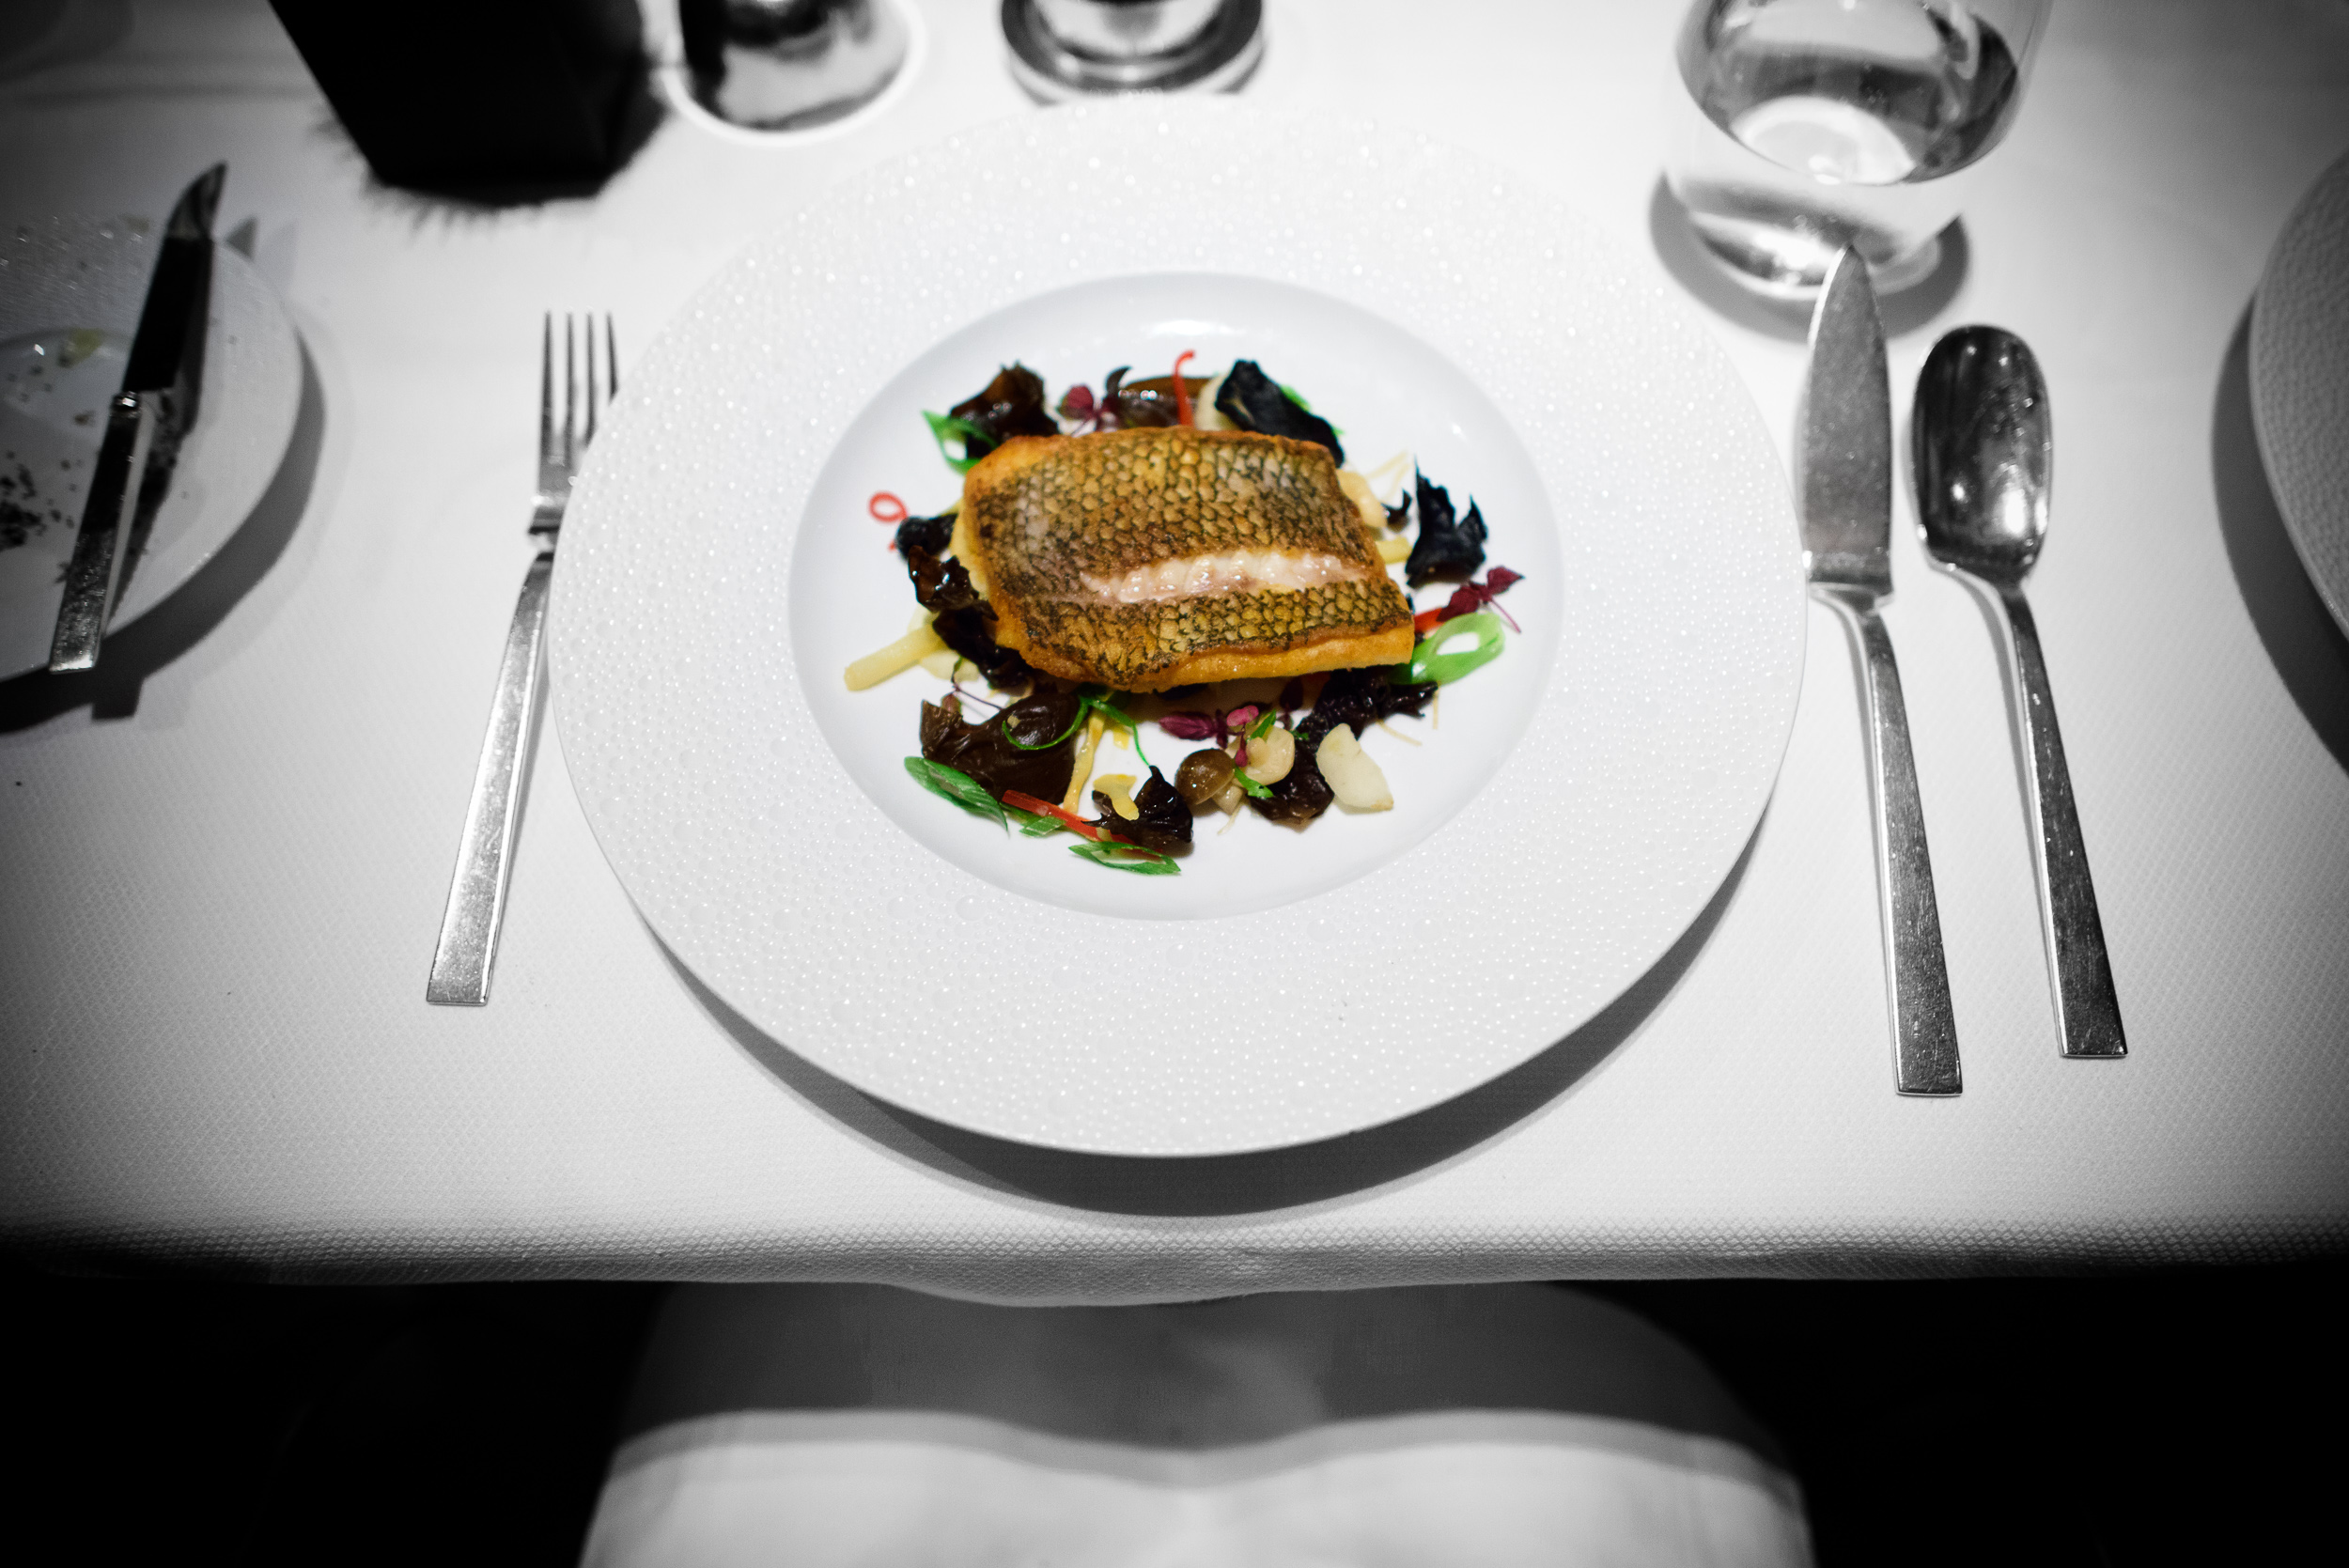 Black bass; crispy black bass, wood ears and water chestnuts, bl